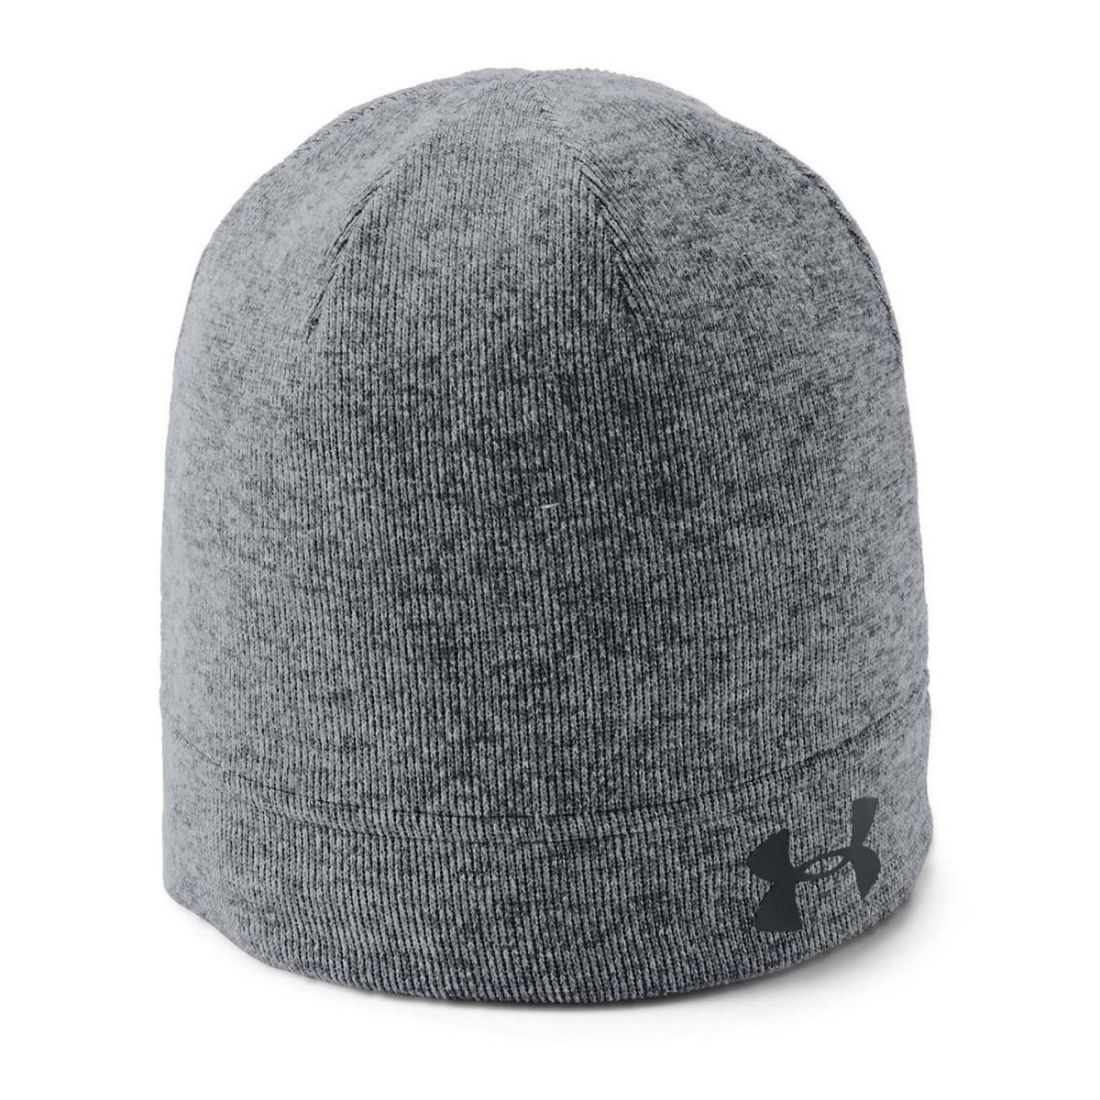 b32cb641602 Under Armour Mens Golf Flc Beanie Hat 5057816990730